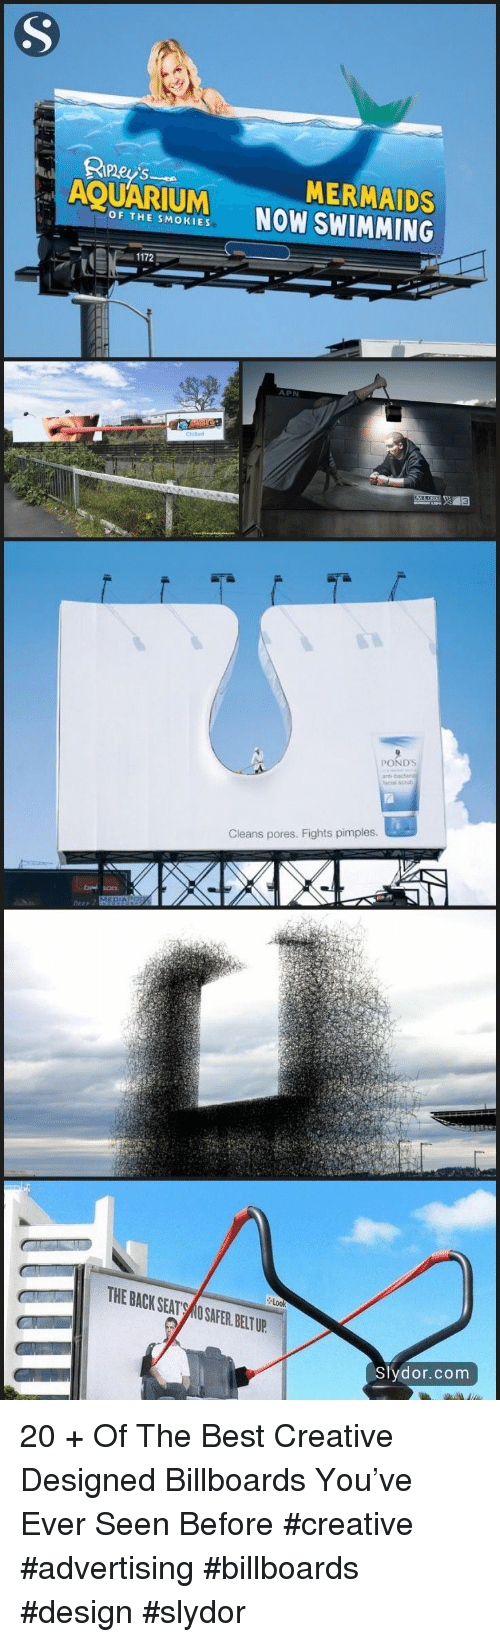 Aquarium, Best, and Mermaids: MERMAIDS  AQUARIUM NOW SWIMMING  OF THE SMOKIES  1172  APN  PONDS  cial soru  Cleans pores. Fights pimples  THE BACK SEAT O SAFER. BELT UP  Slydor.com 20 + Of The Best Creative Designed Billboards You've Ever Seen Before #creative #advertising #billboards #design #slydor